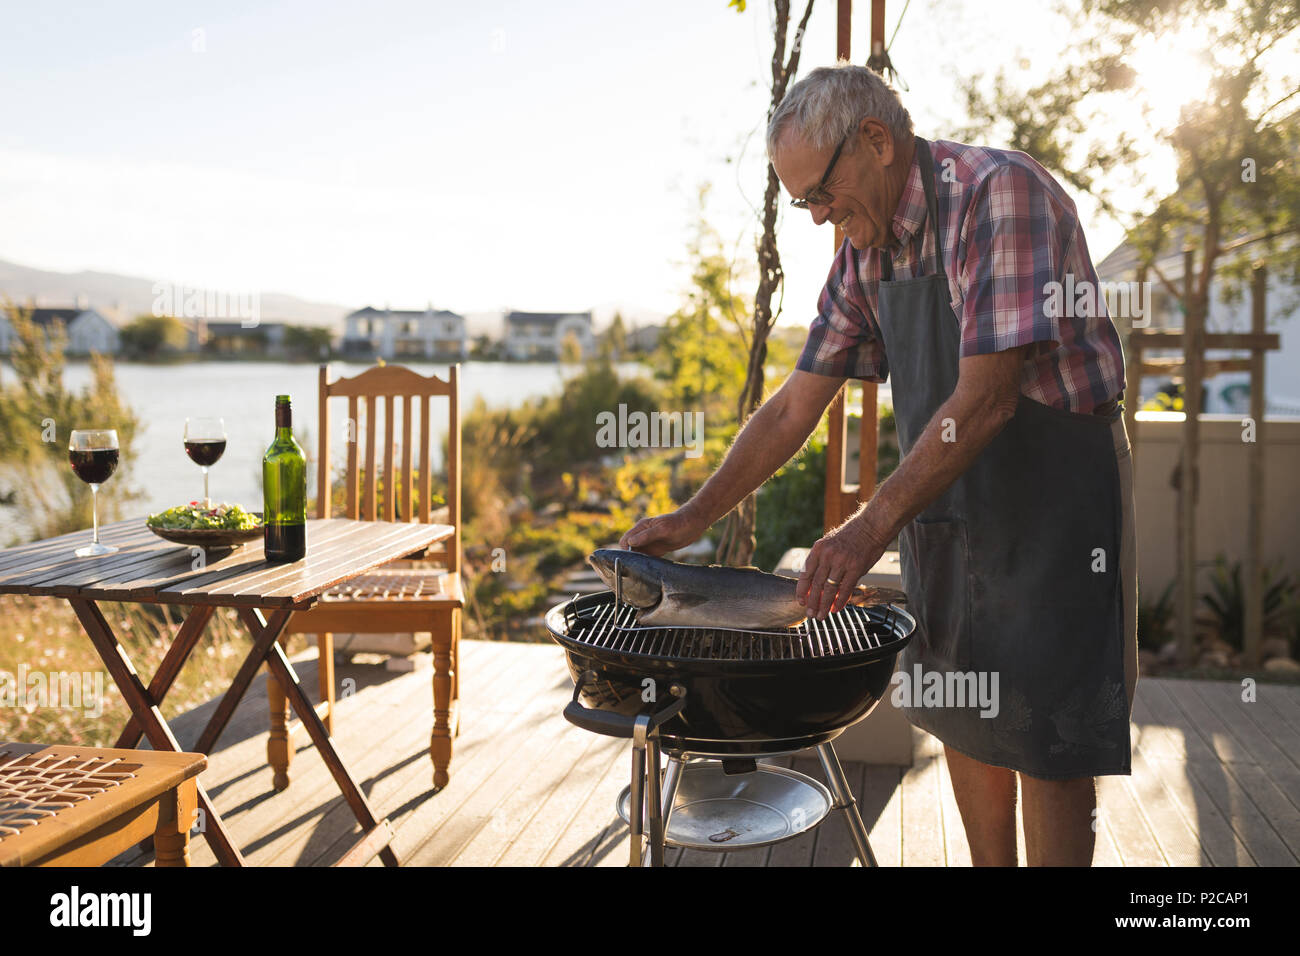 Senior man cooking fish on barbeque - Stock Image